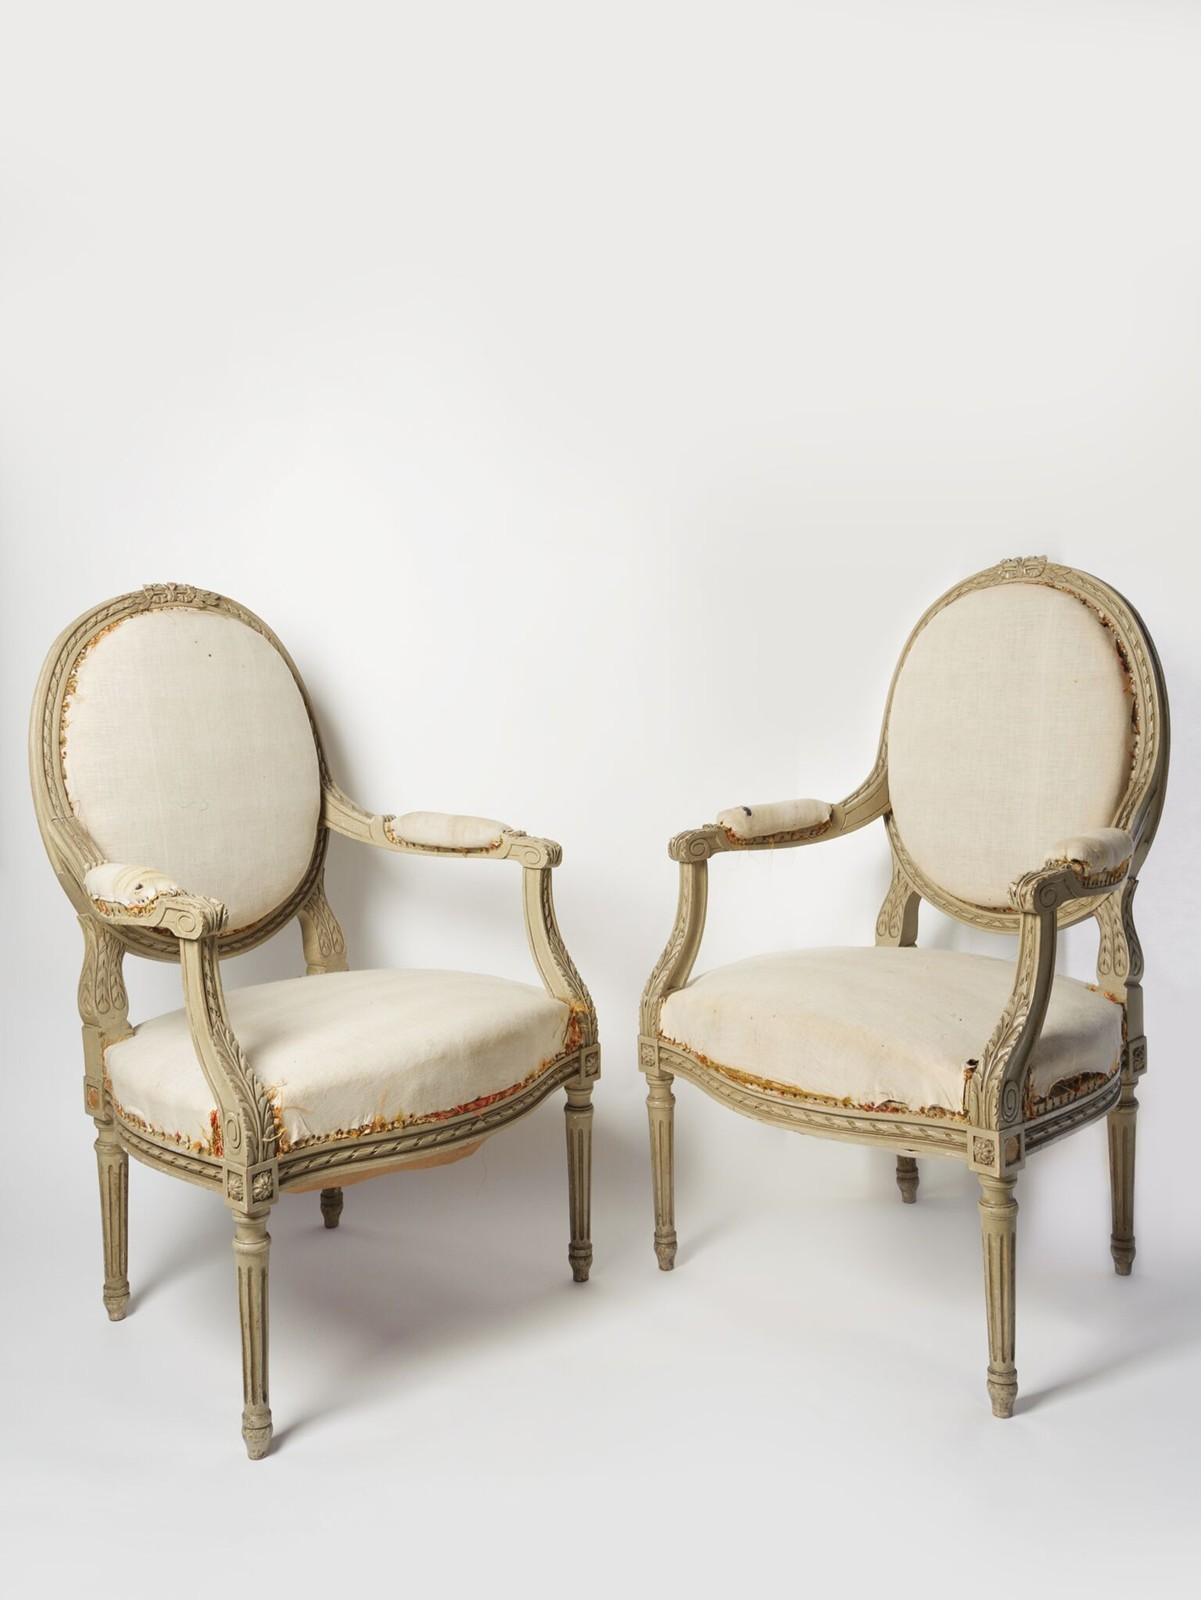 Zoom; PAIR BEAUTIFUL ANTIQUE FRENCH LOUIS XVI CHAIRS-decorative-antiques -uk-chairs69_main_636283958932905182. - PAIR BEAUTIFUL ANTIQUE FRENCH LOUIS XVI CHAIRS - The Hoarde